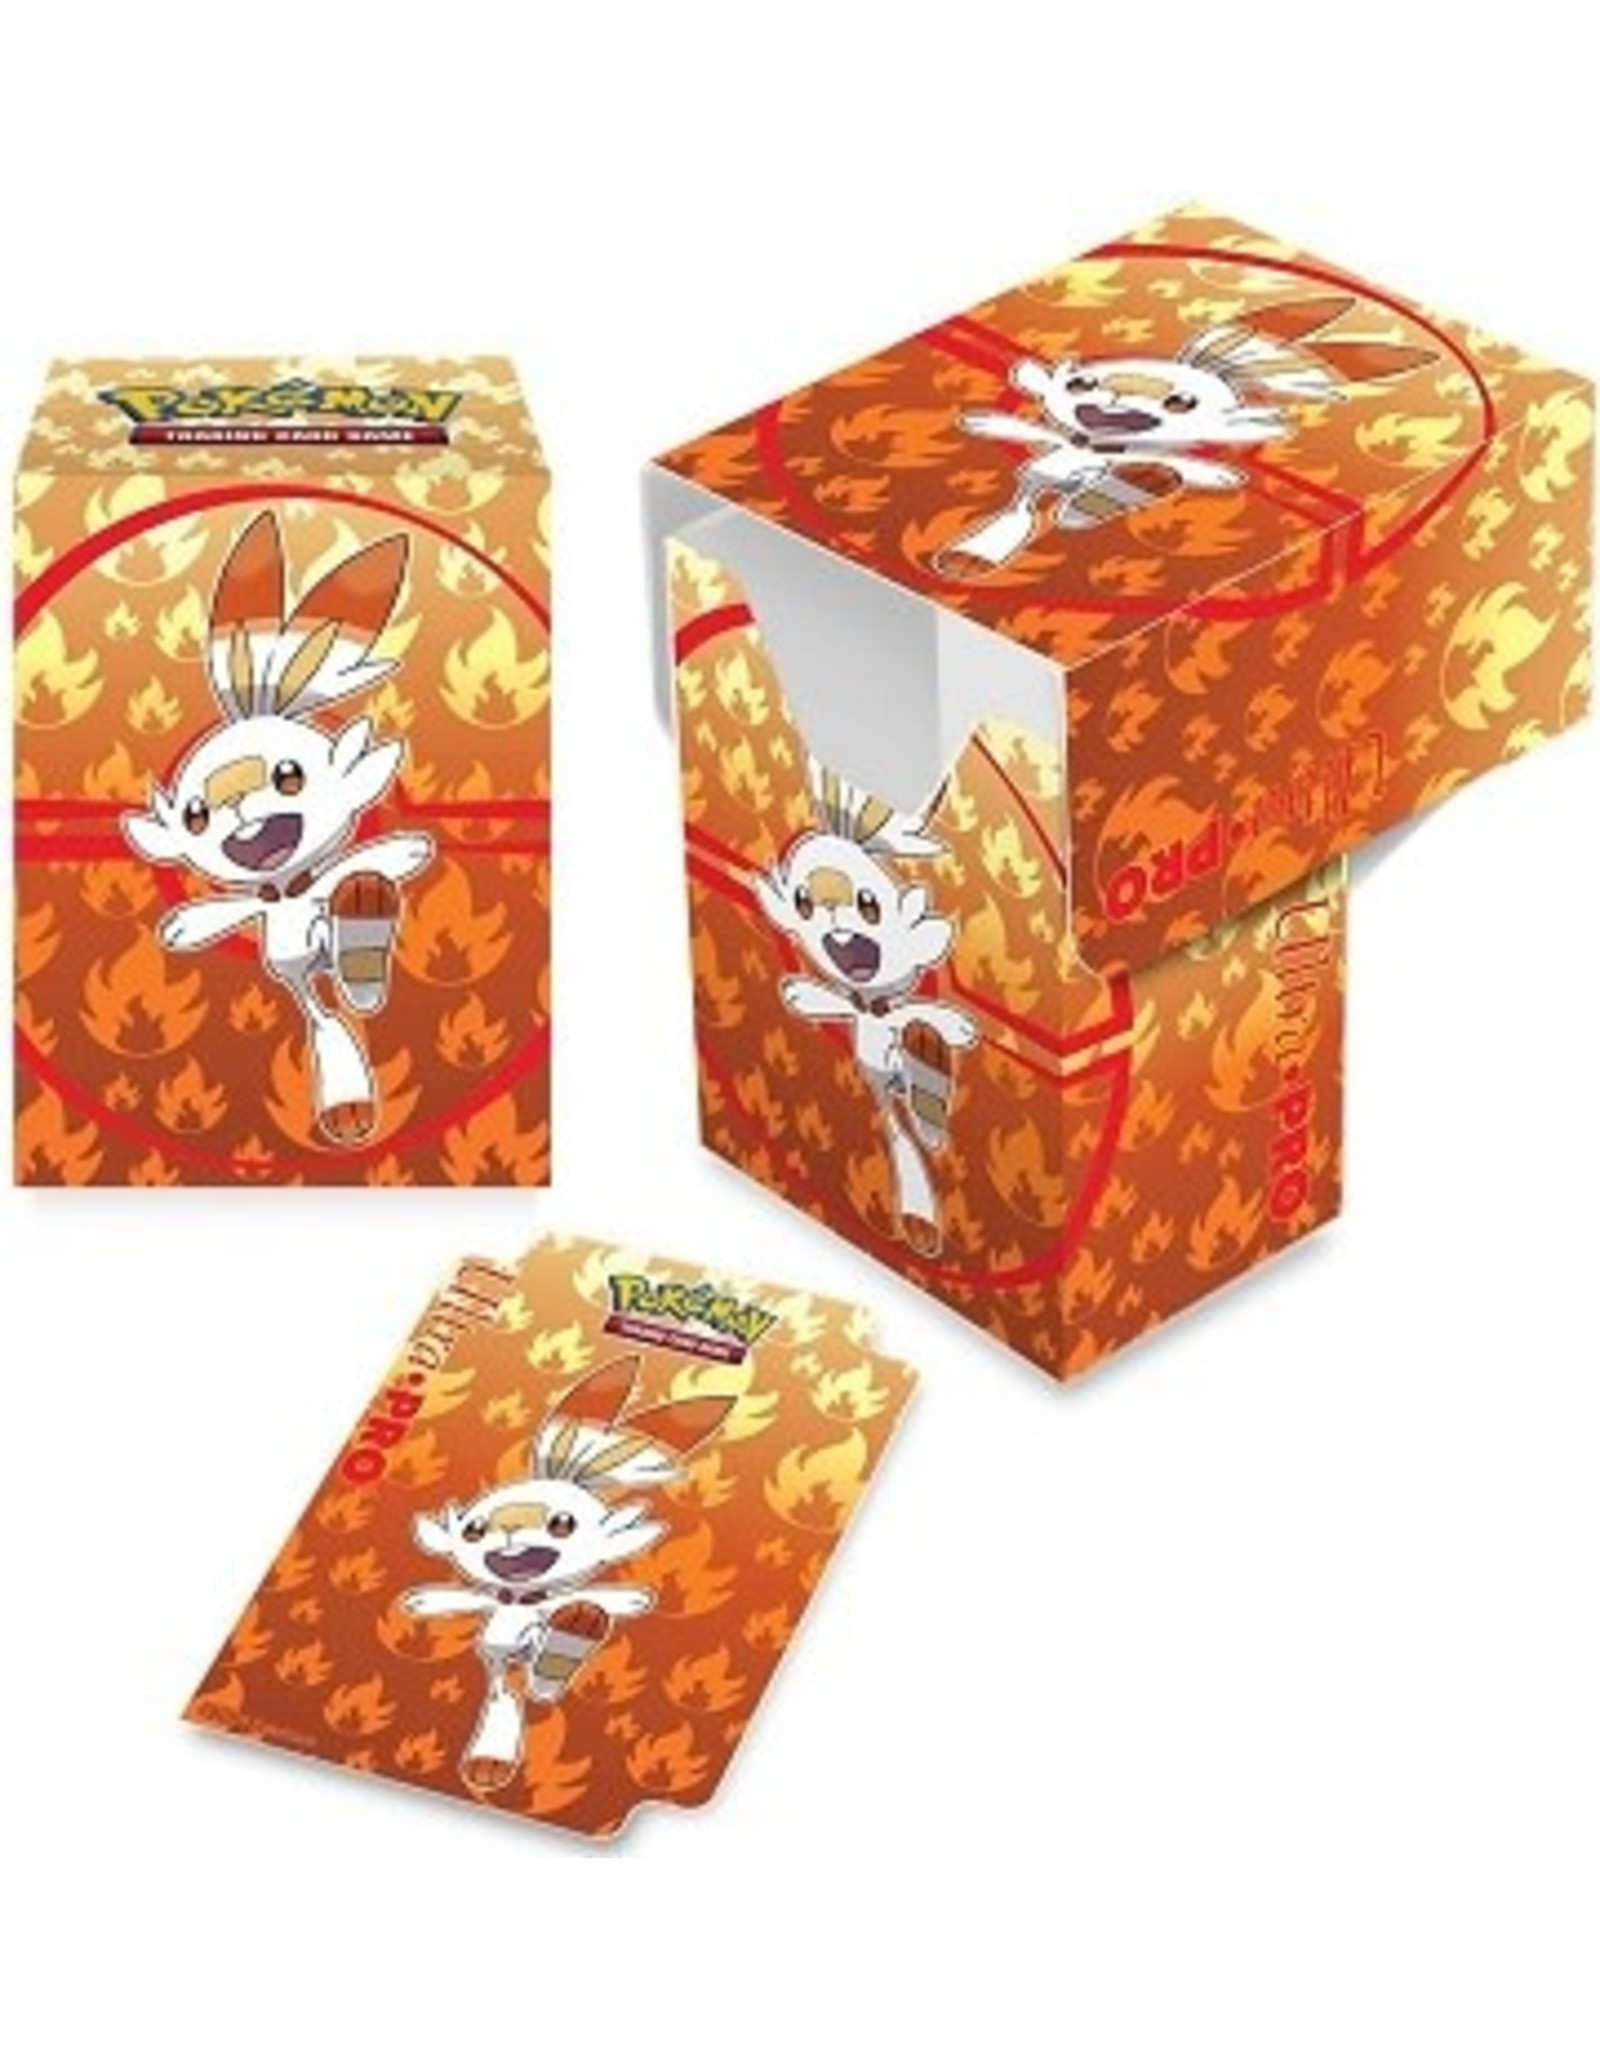 Ultra Pro UP D-BOX POKEMON SWSH GALAR STARTERS SCORBUNNY